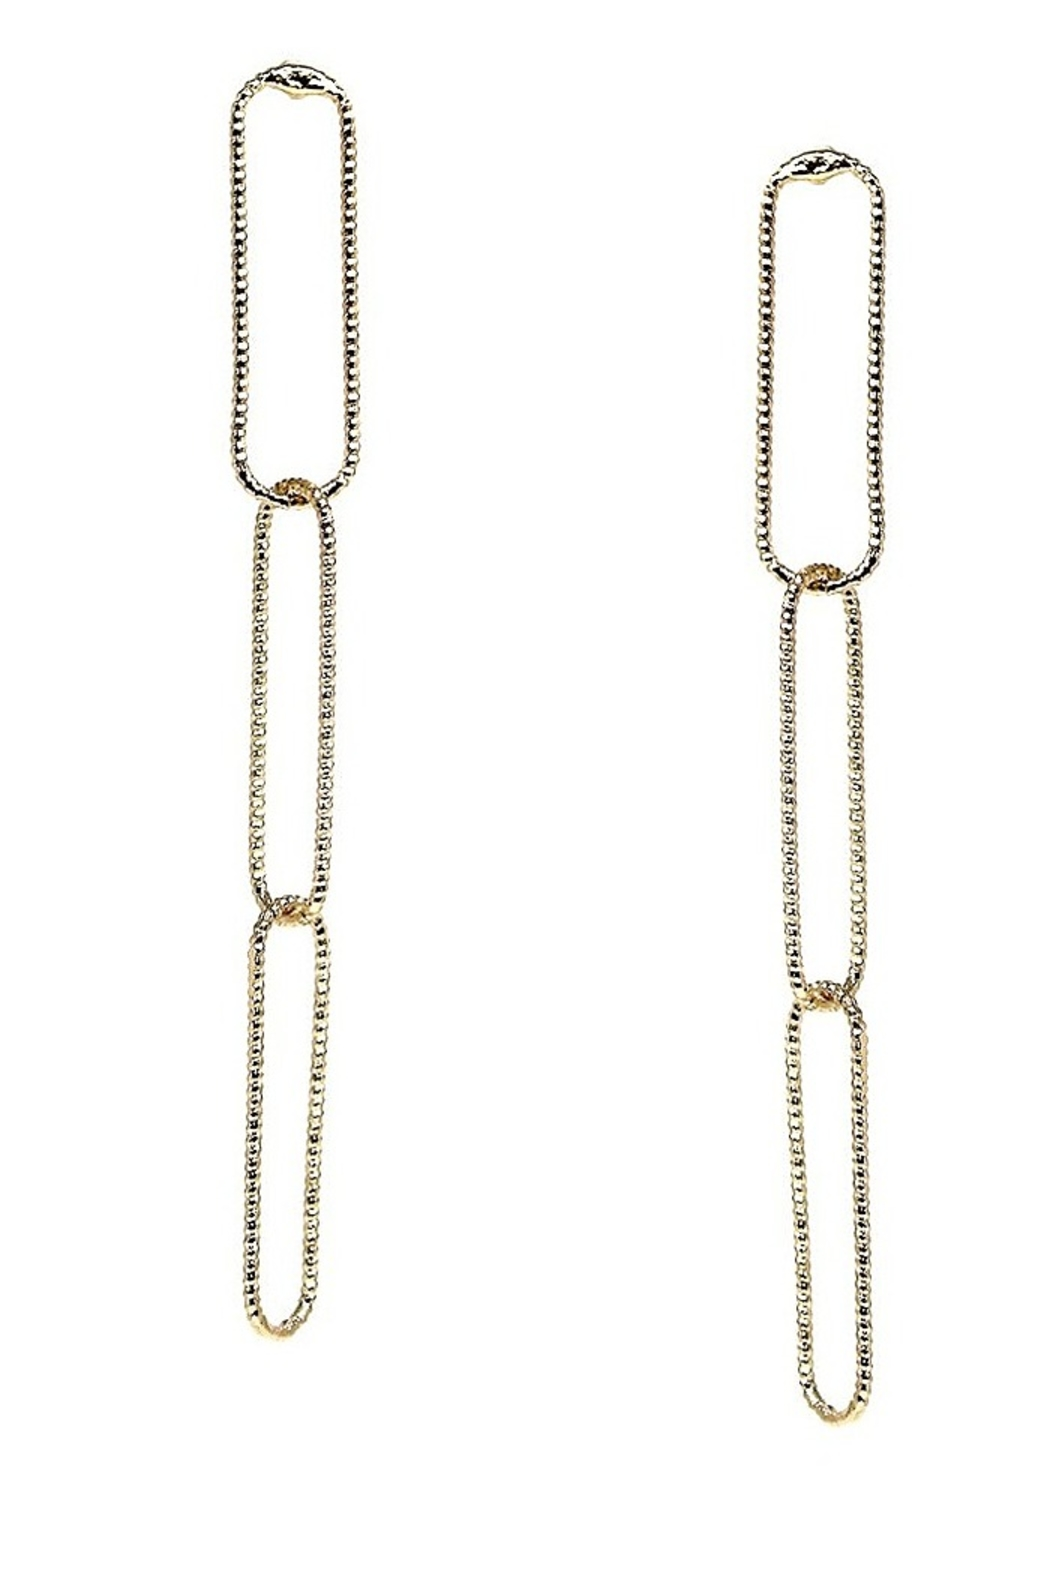 US Jewelry House Sparkle Texture Skinny Hoop Linked Drop Earrings - Main Image